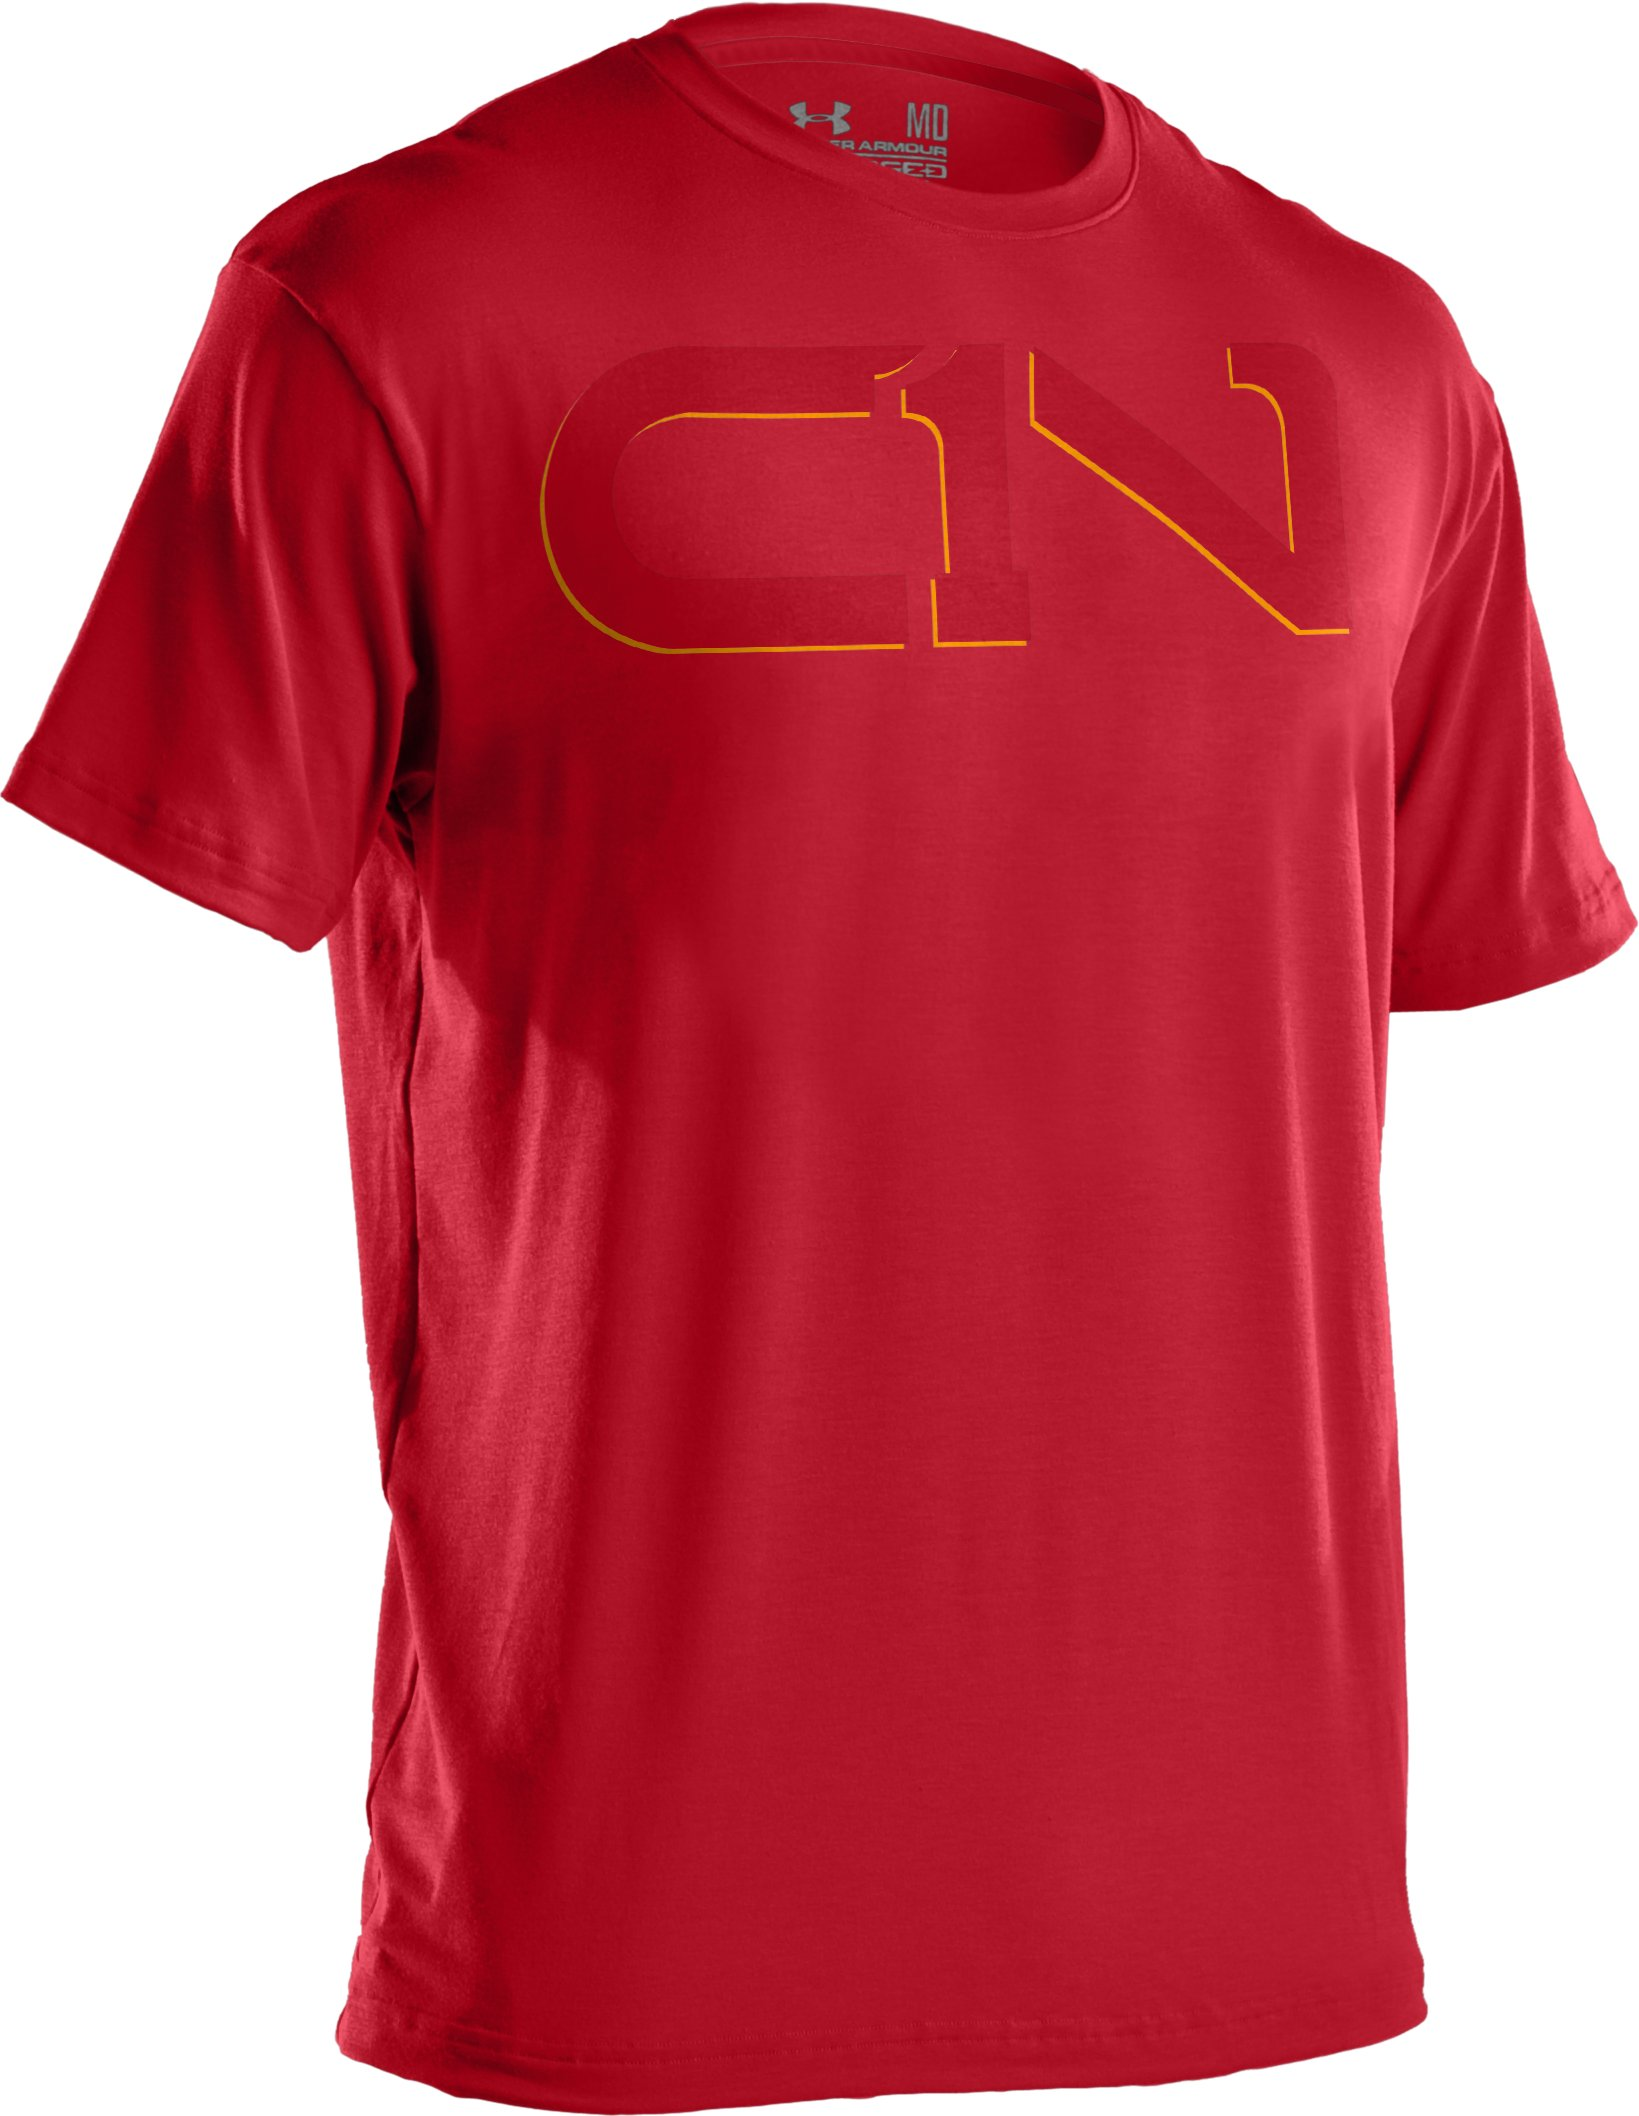 Men's C1N Logo T-Shirt, Red